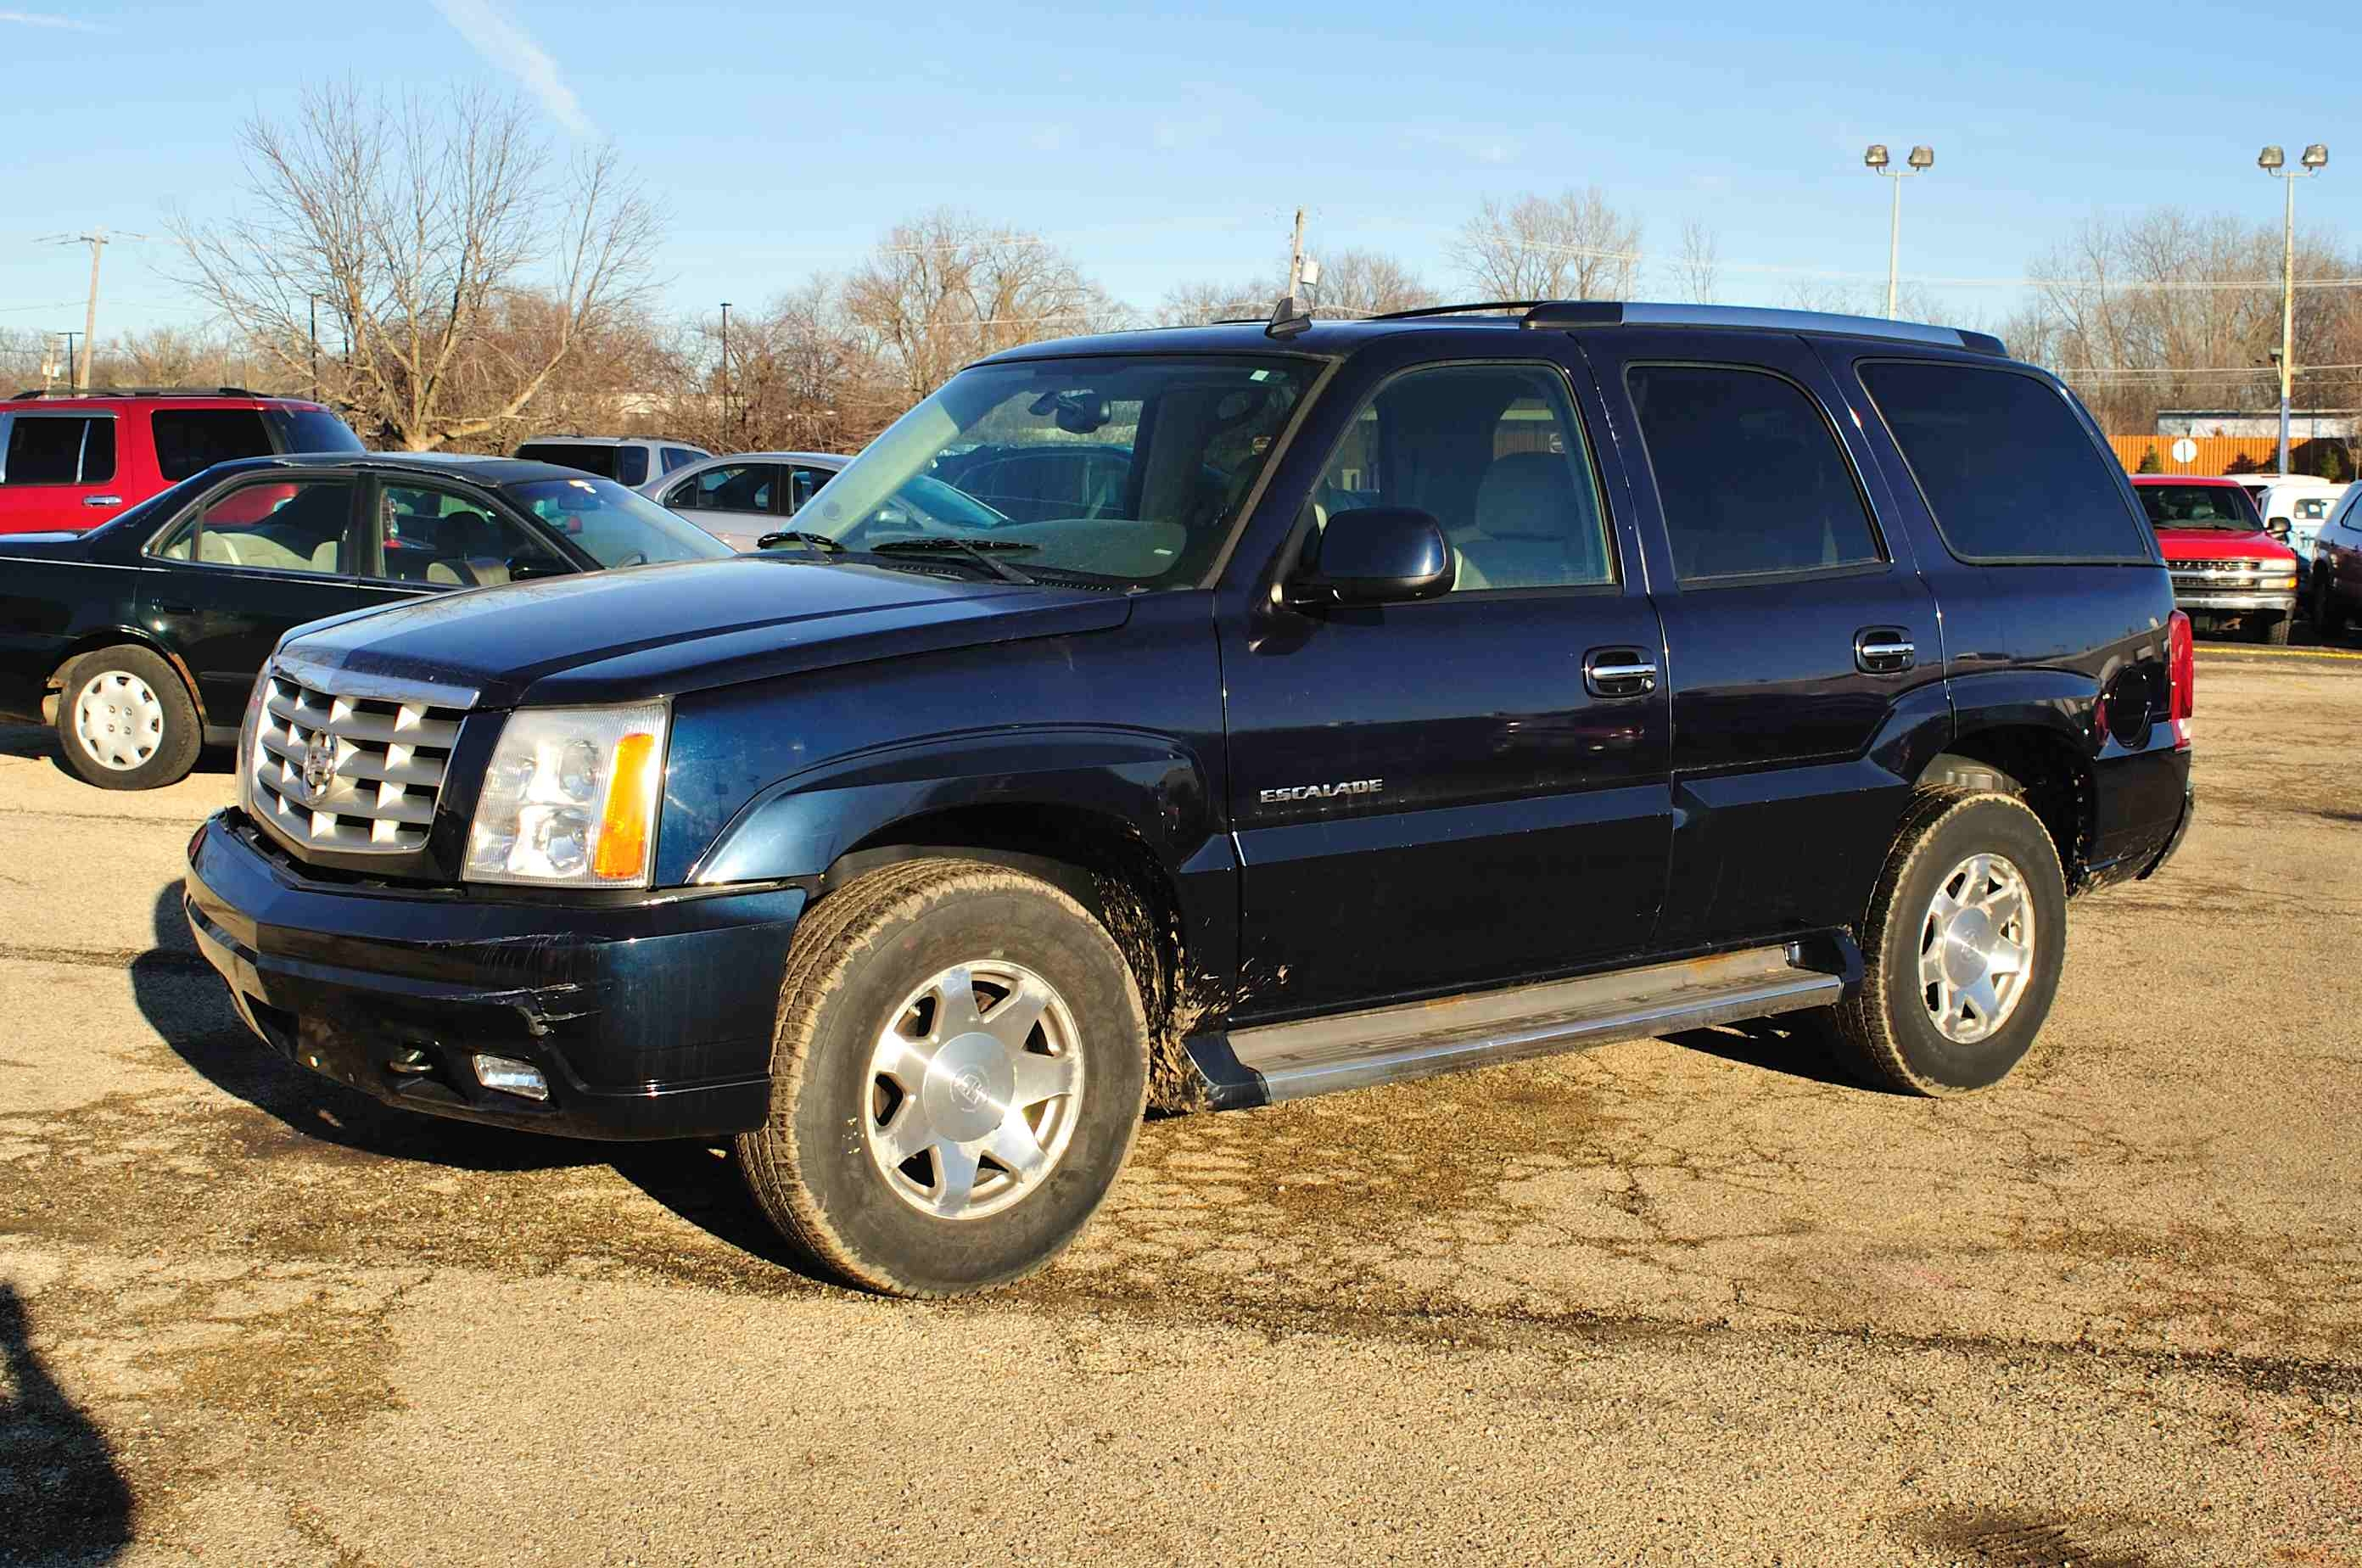 2005 Cadillac Escalade Blue Used SUV Sale Antioch Zion Waukegan Lake County Illinois